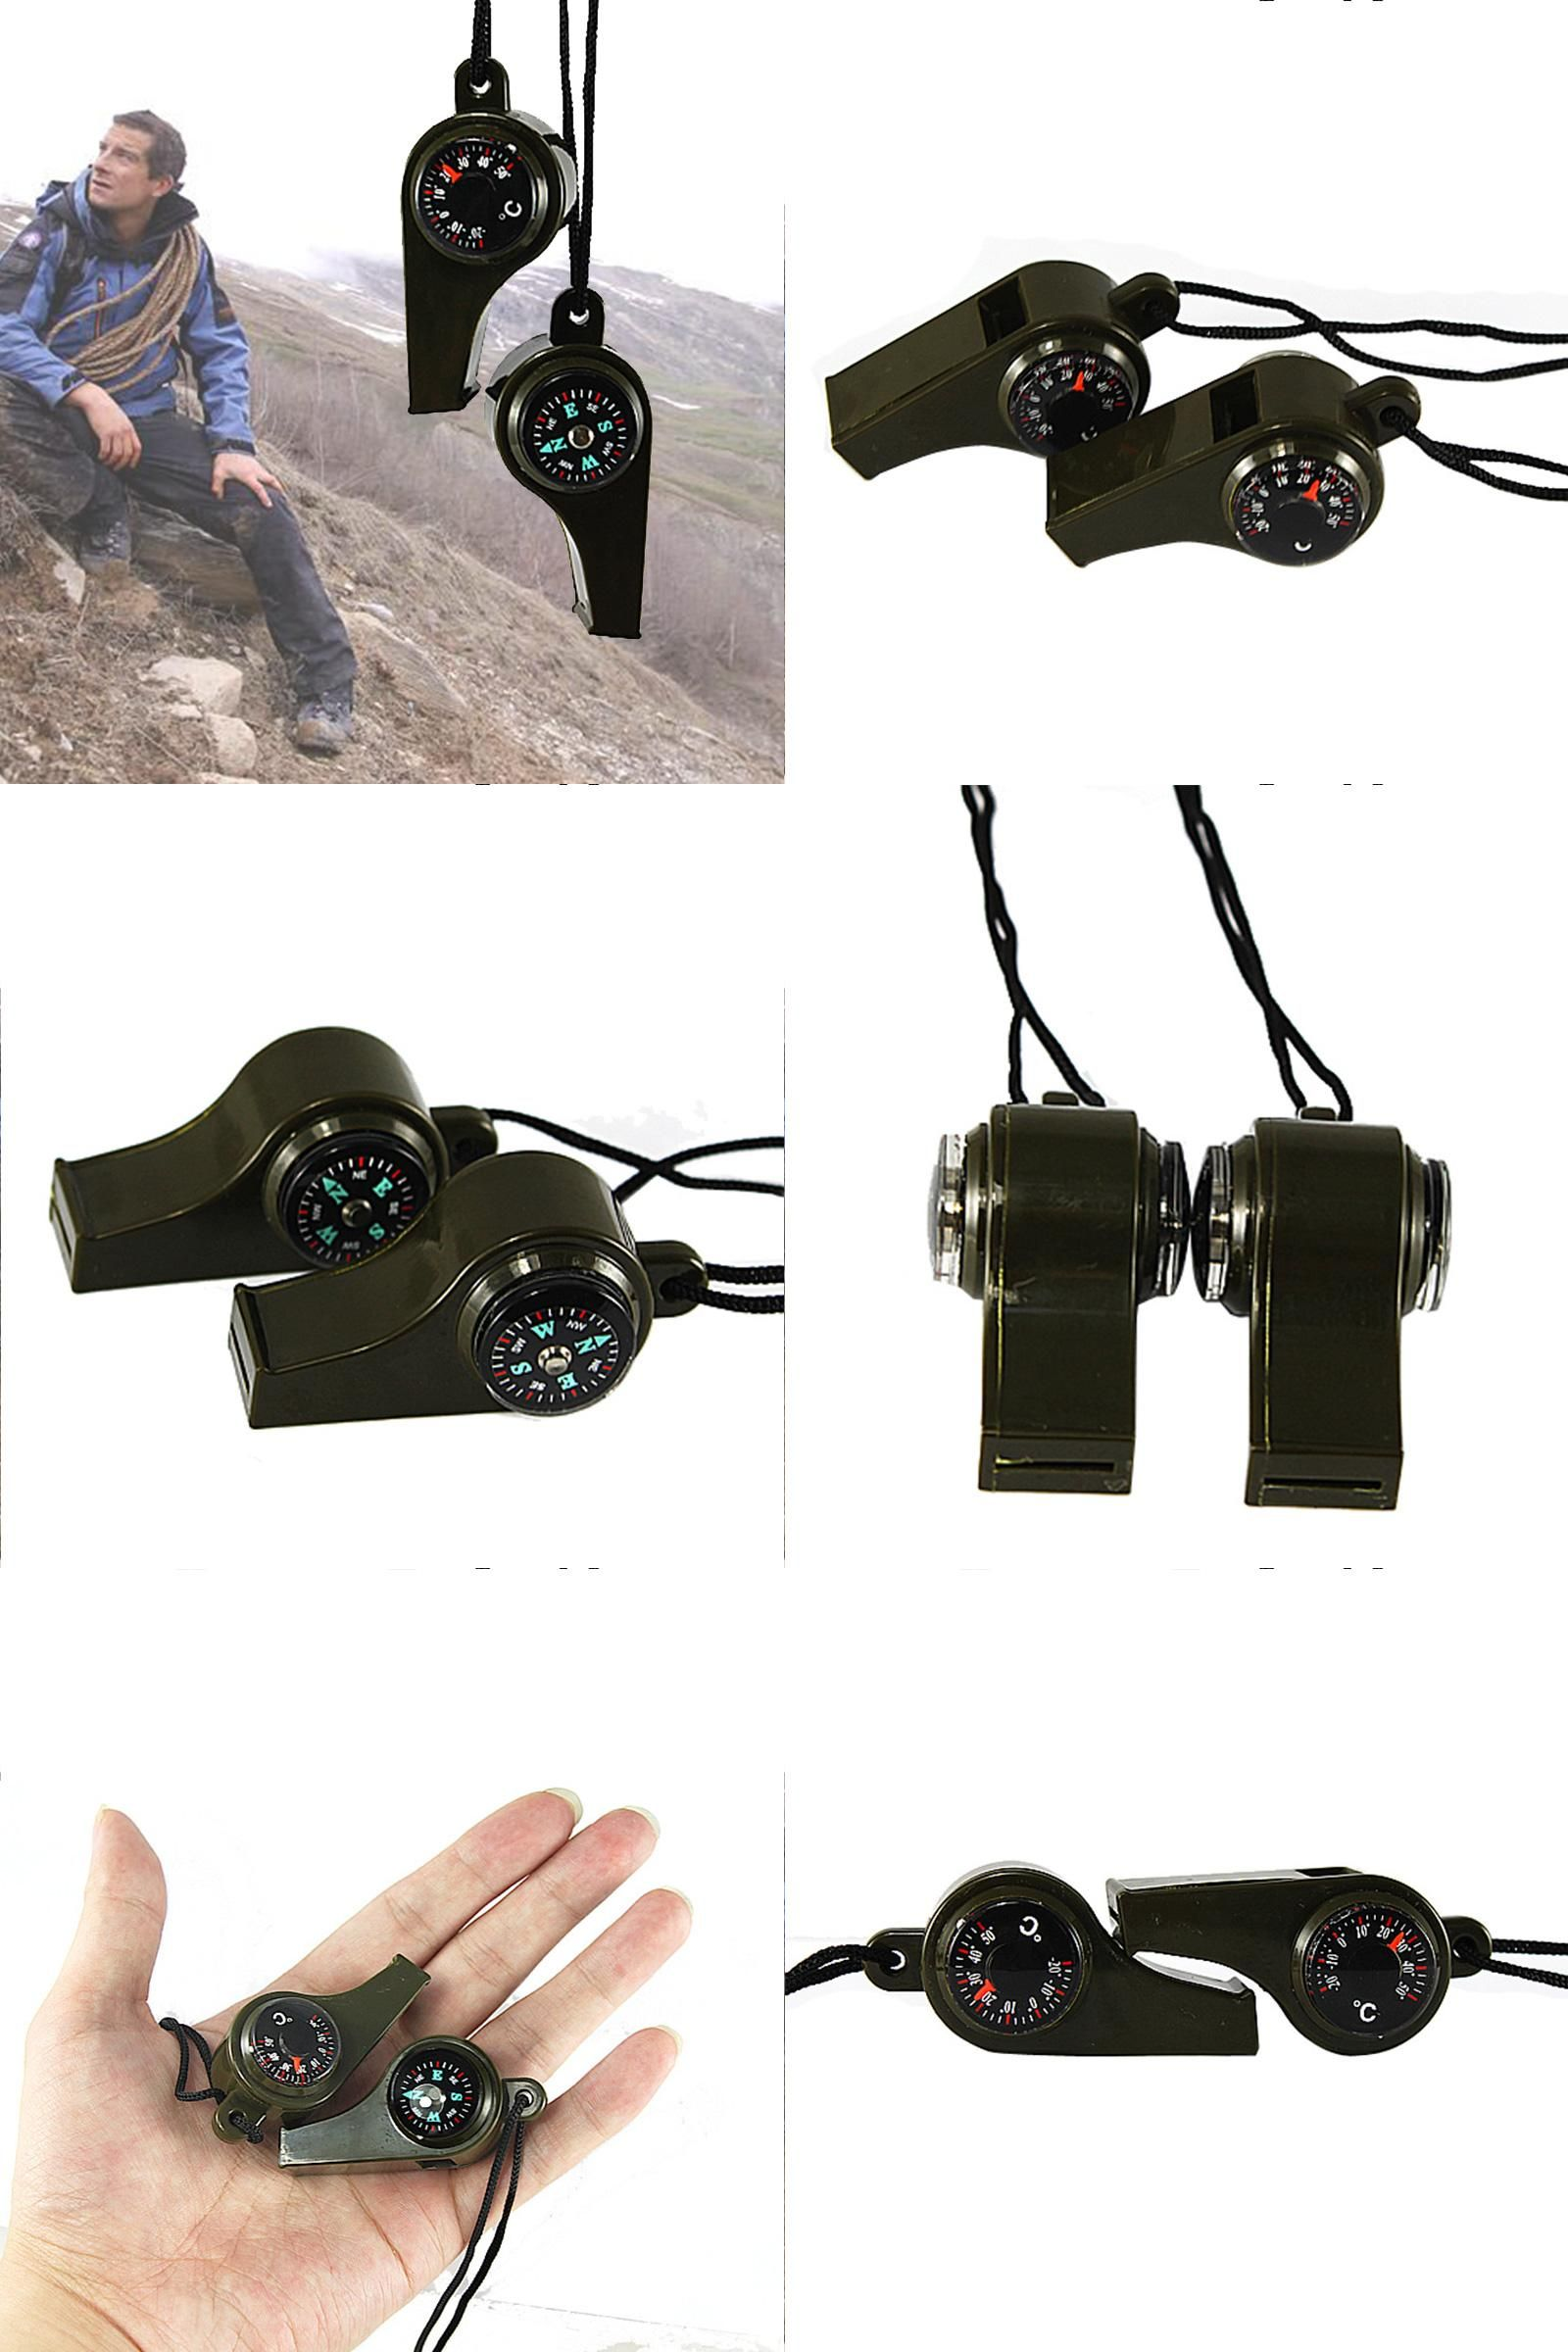 Loud Whistle with Neck Strap for Outdoor Survival Team Sport Training